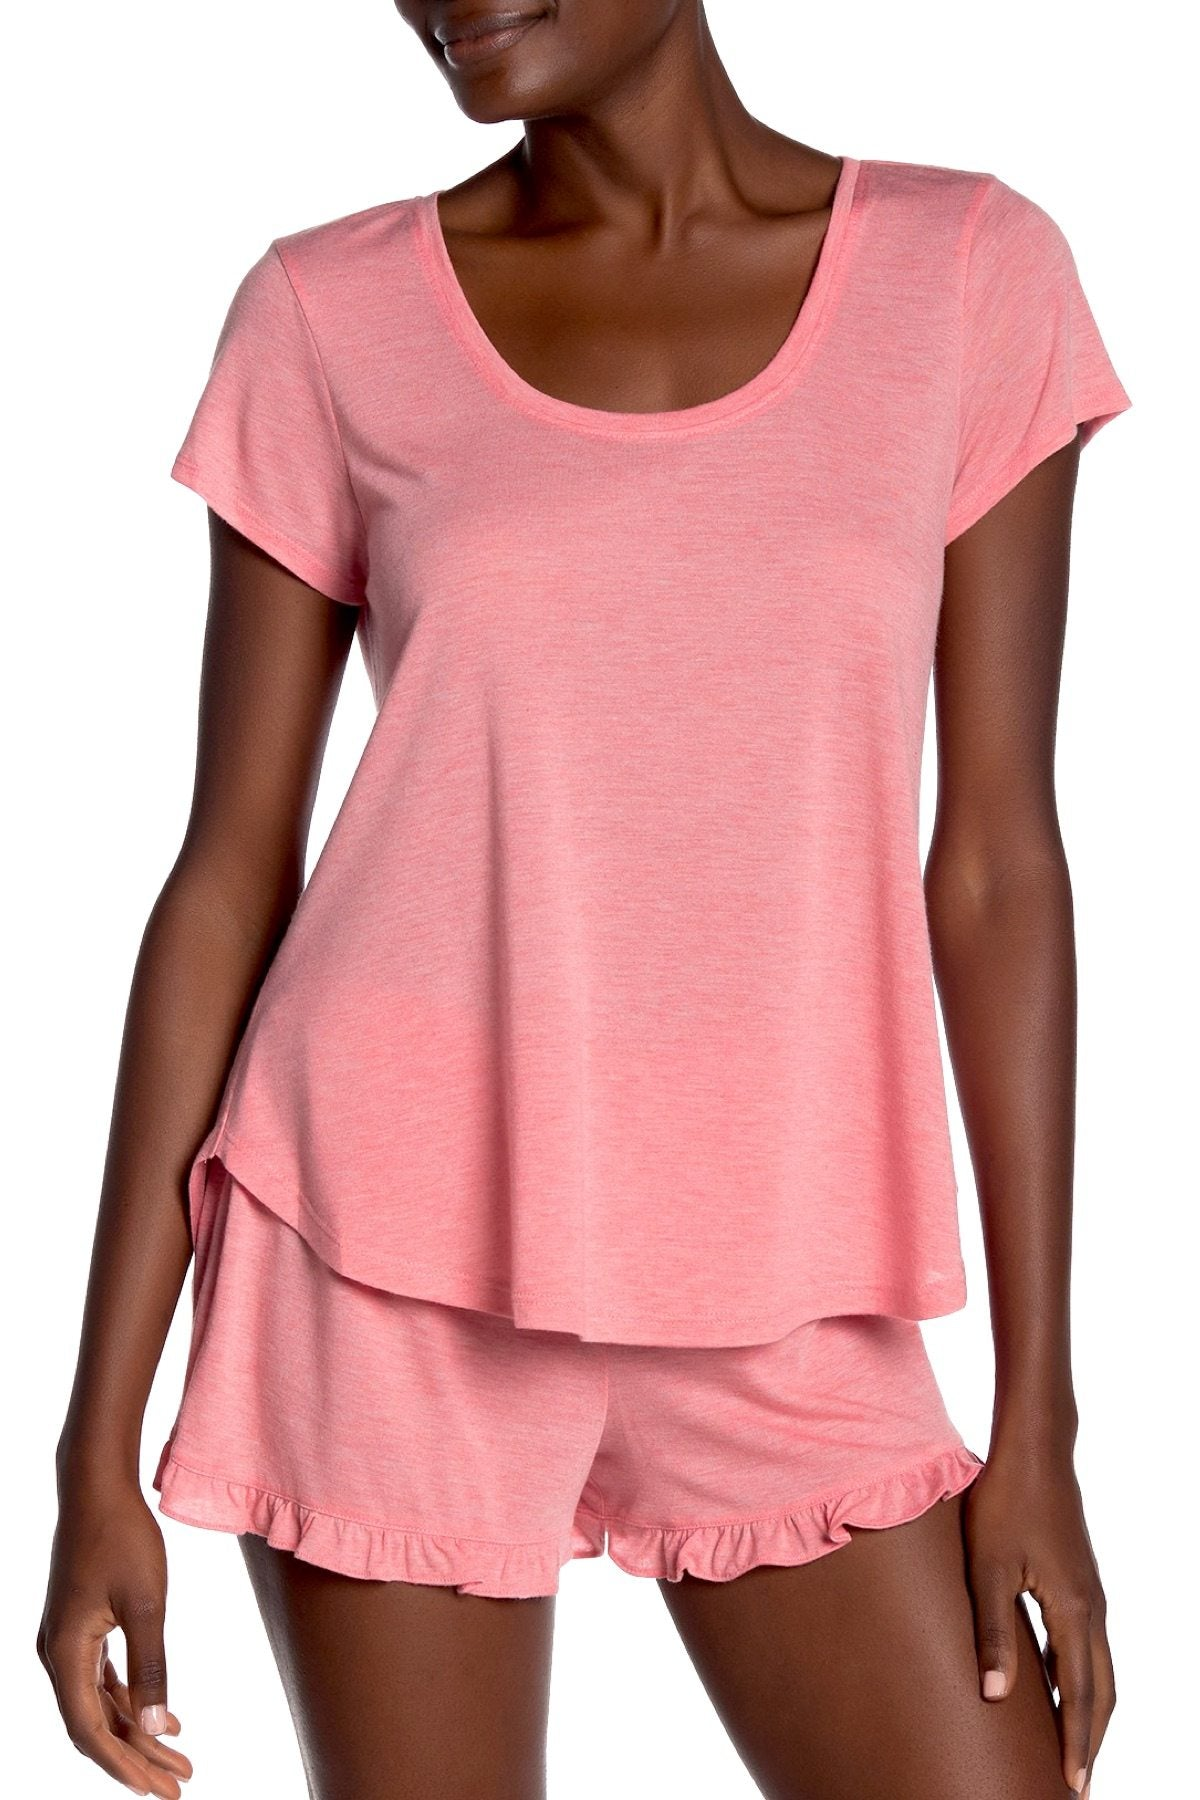 Josie by Natori Heathers Modal Short Sleeve Top in Coral